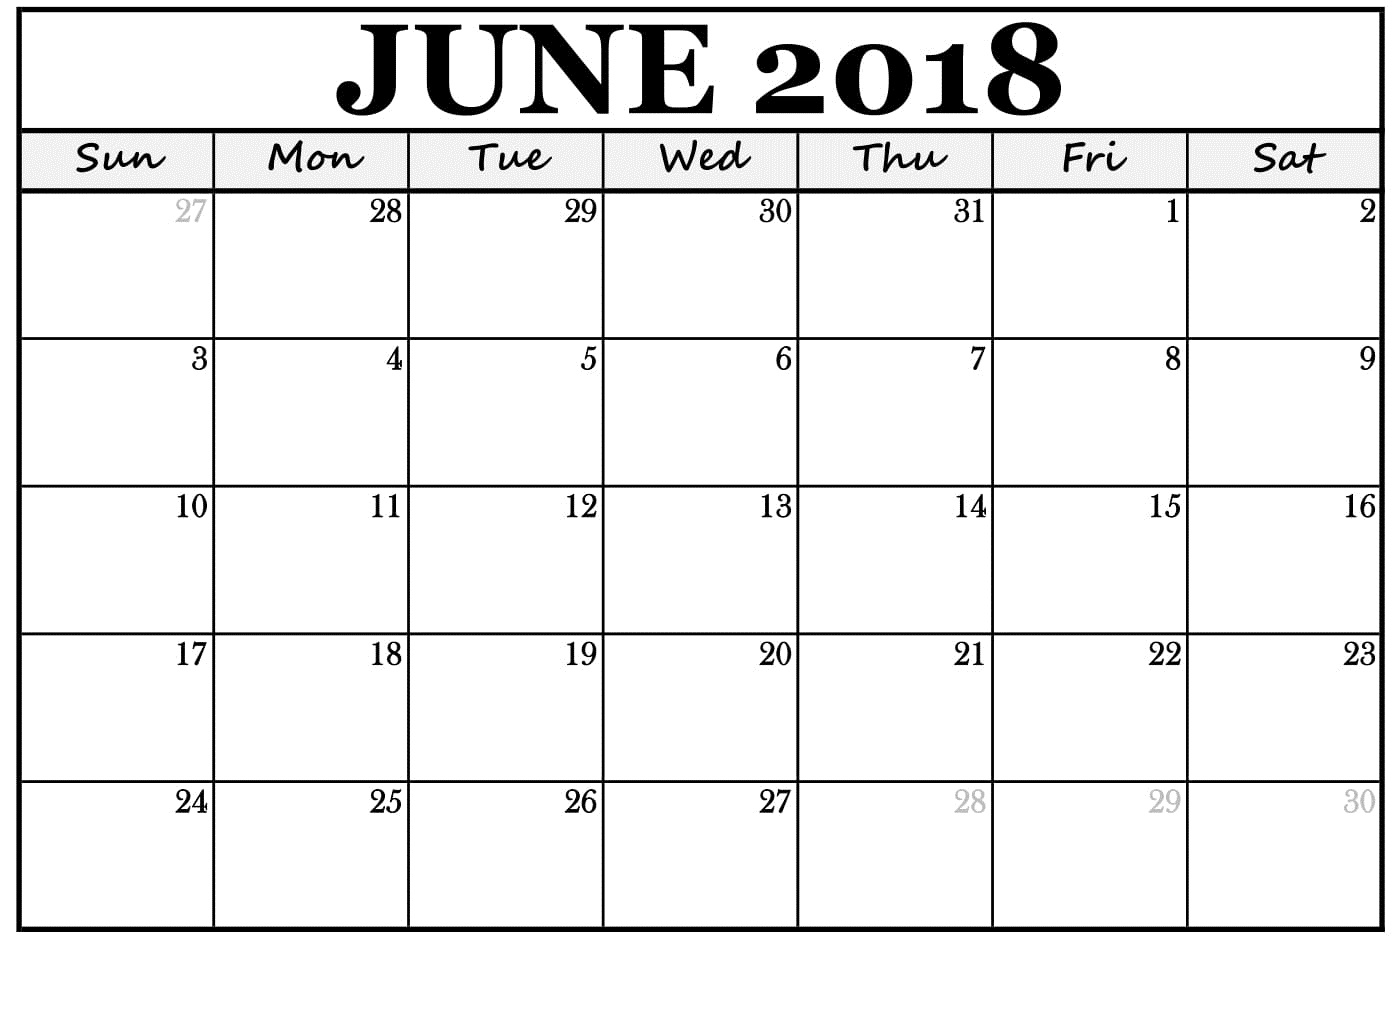 June 2018 Calendar Template Desk Table